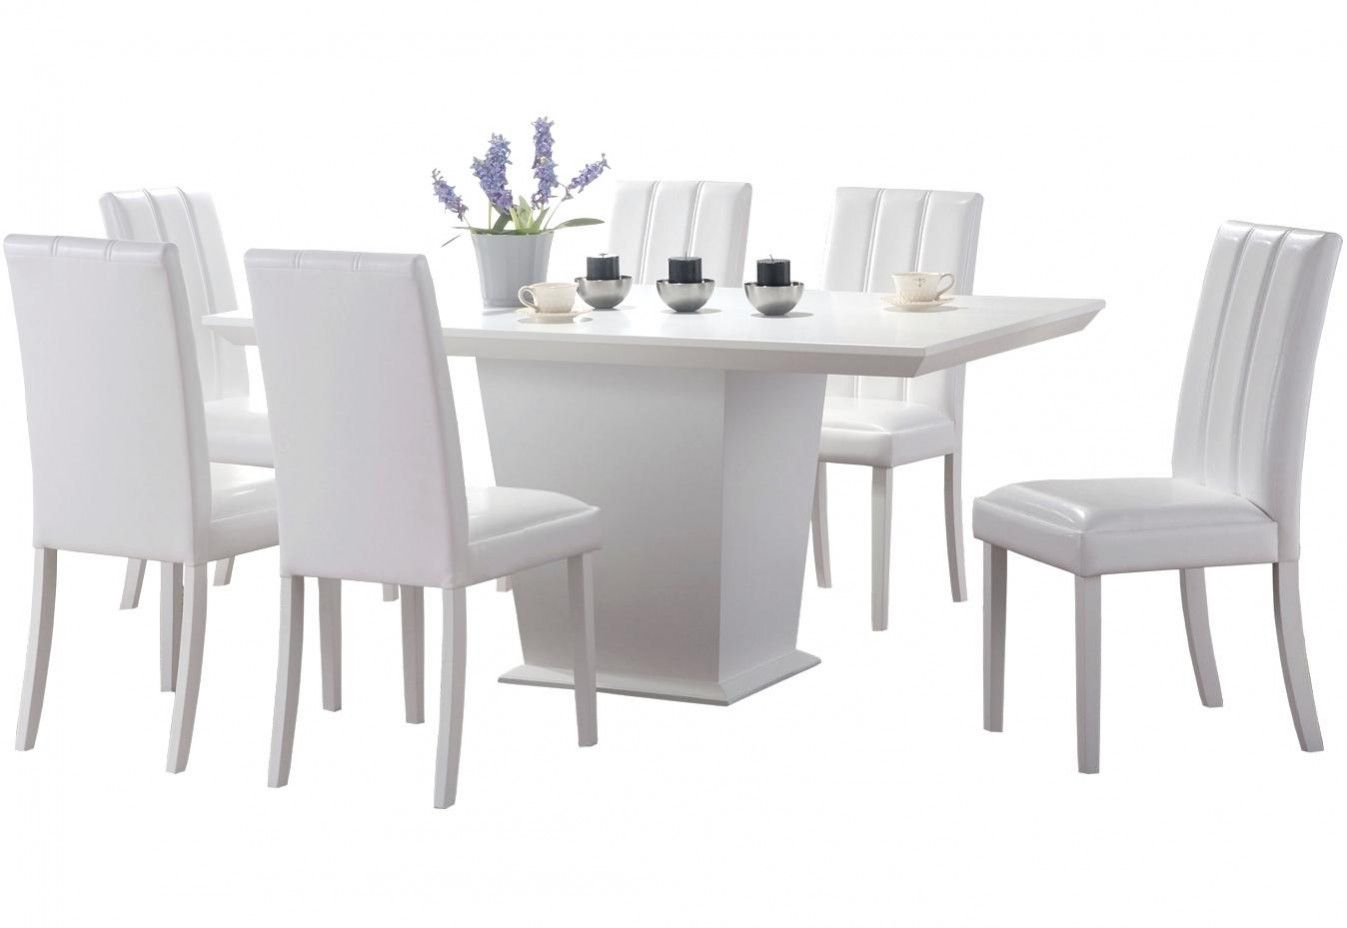 2019 White Dining Table 6 Chairs Modern Furniture Design Check